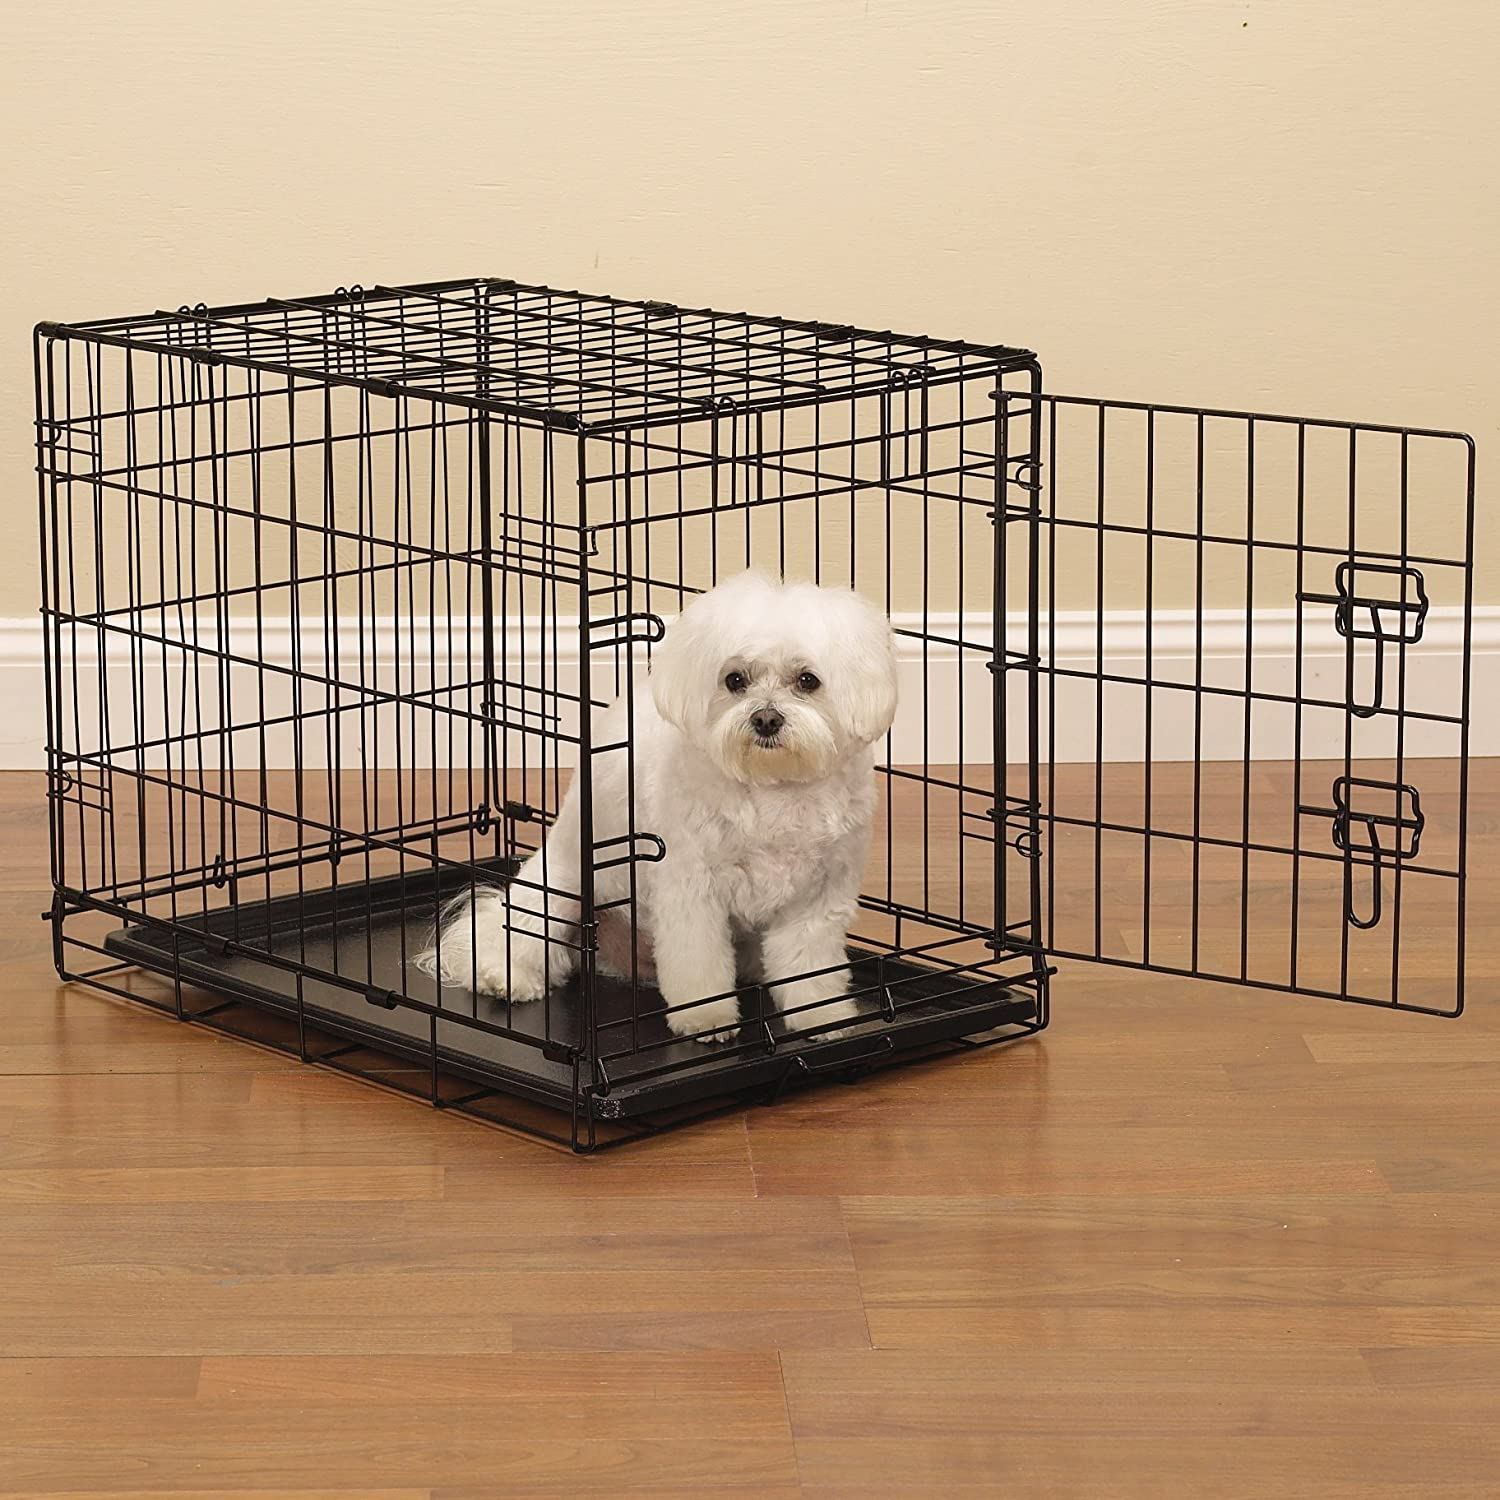 amazoncom  proselect easy dog crates for dogs and pets  black  - amazoncom  proselect easy dog crates for dogs and pets  black extrasmall  pet crates  pet supplies